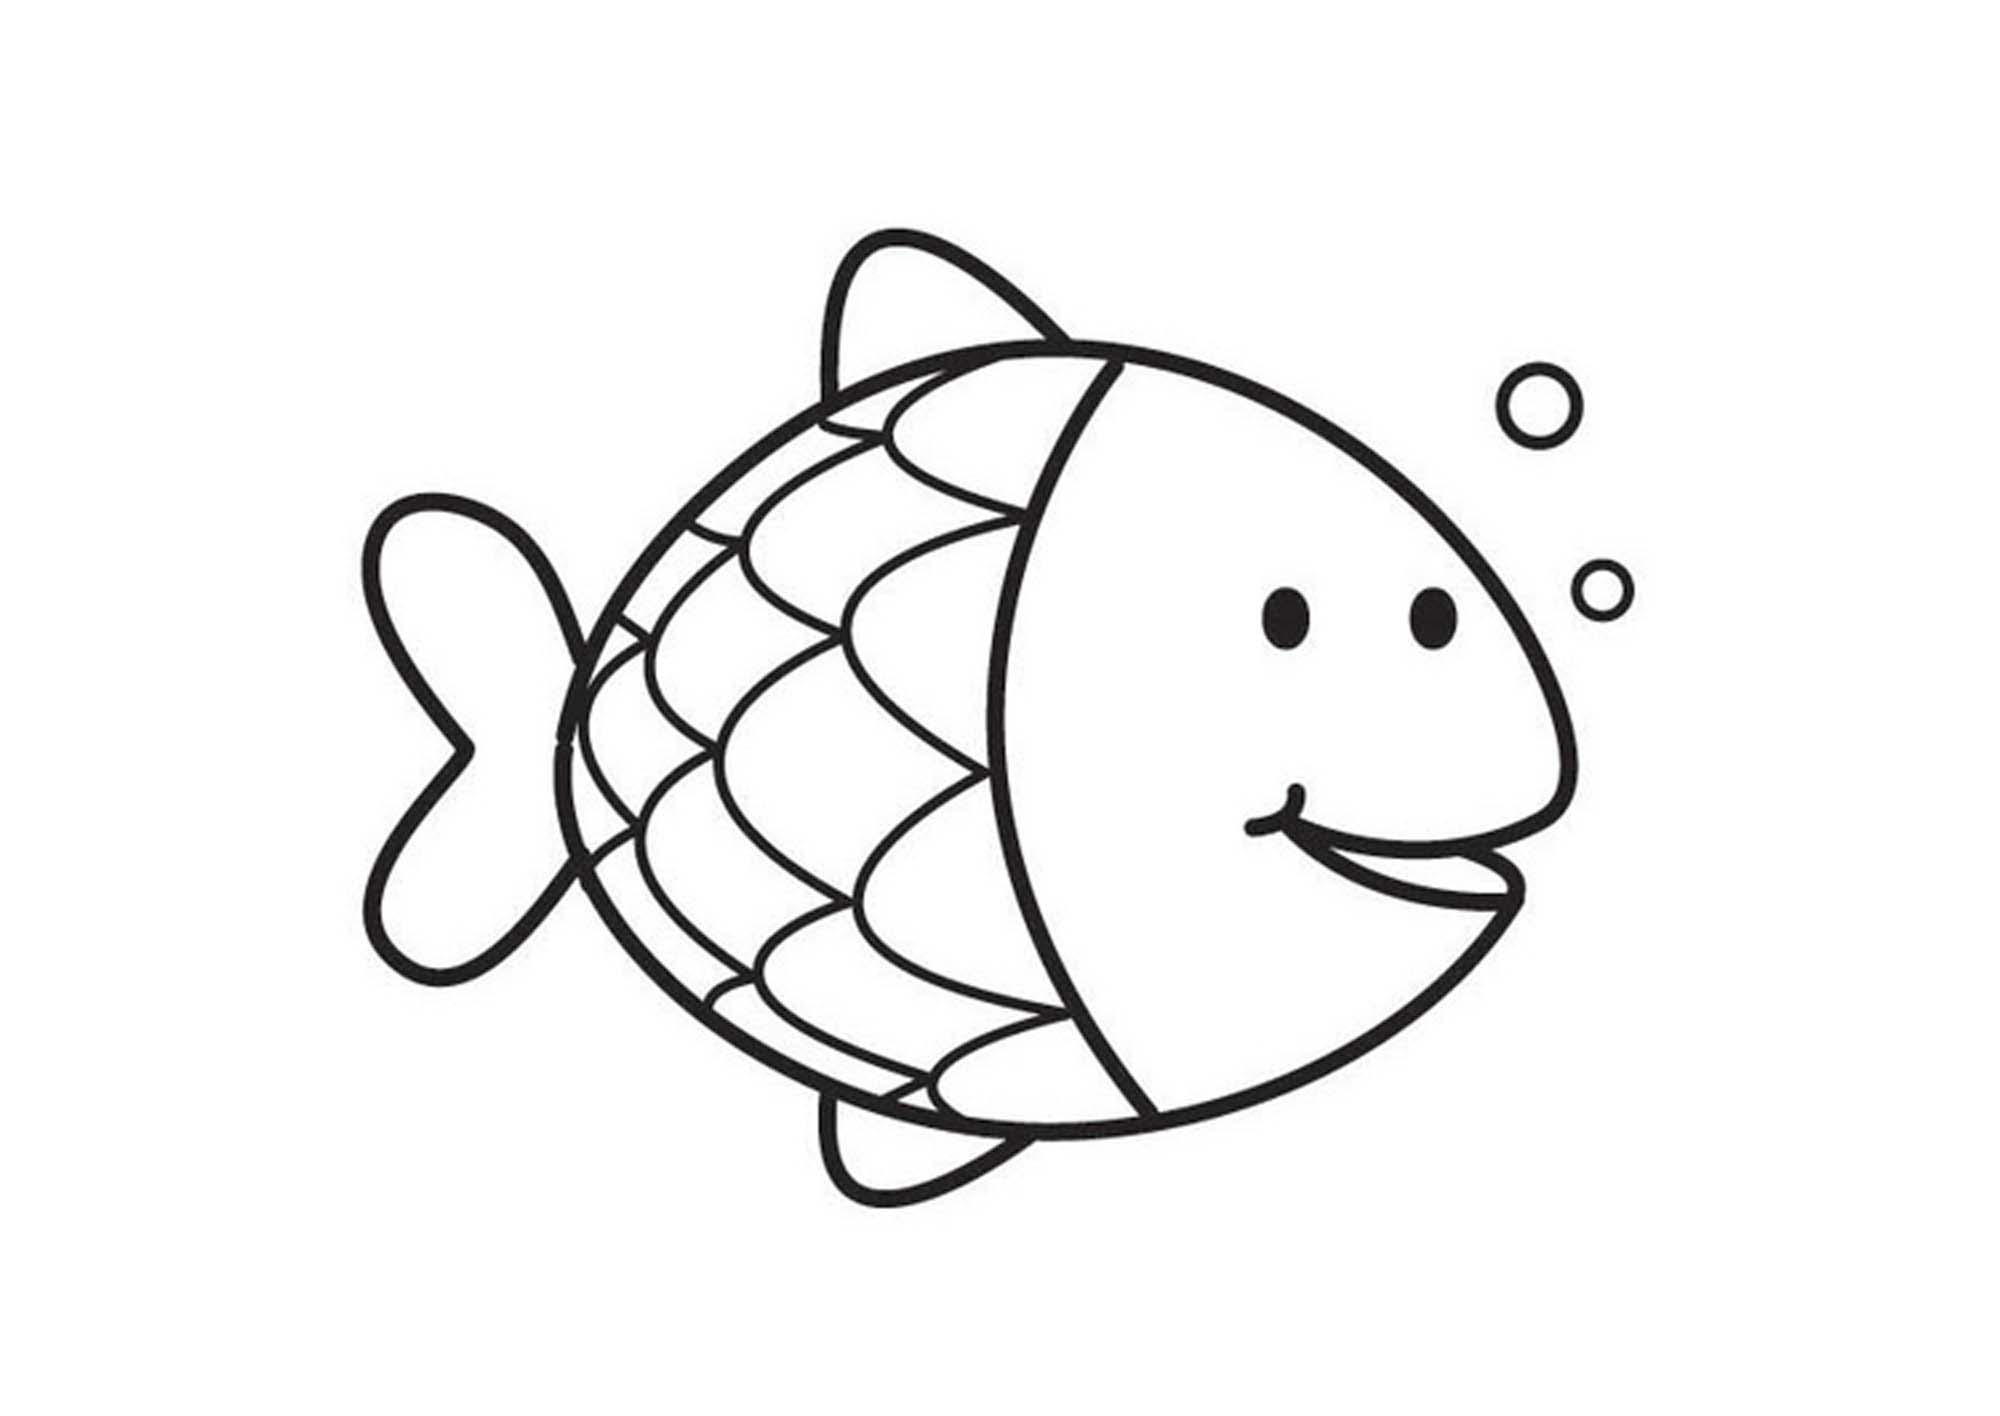 coloring fish pages free printable fish coloring pages for kids cool2bkids pages fish coloring 1 1